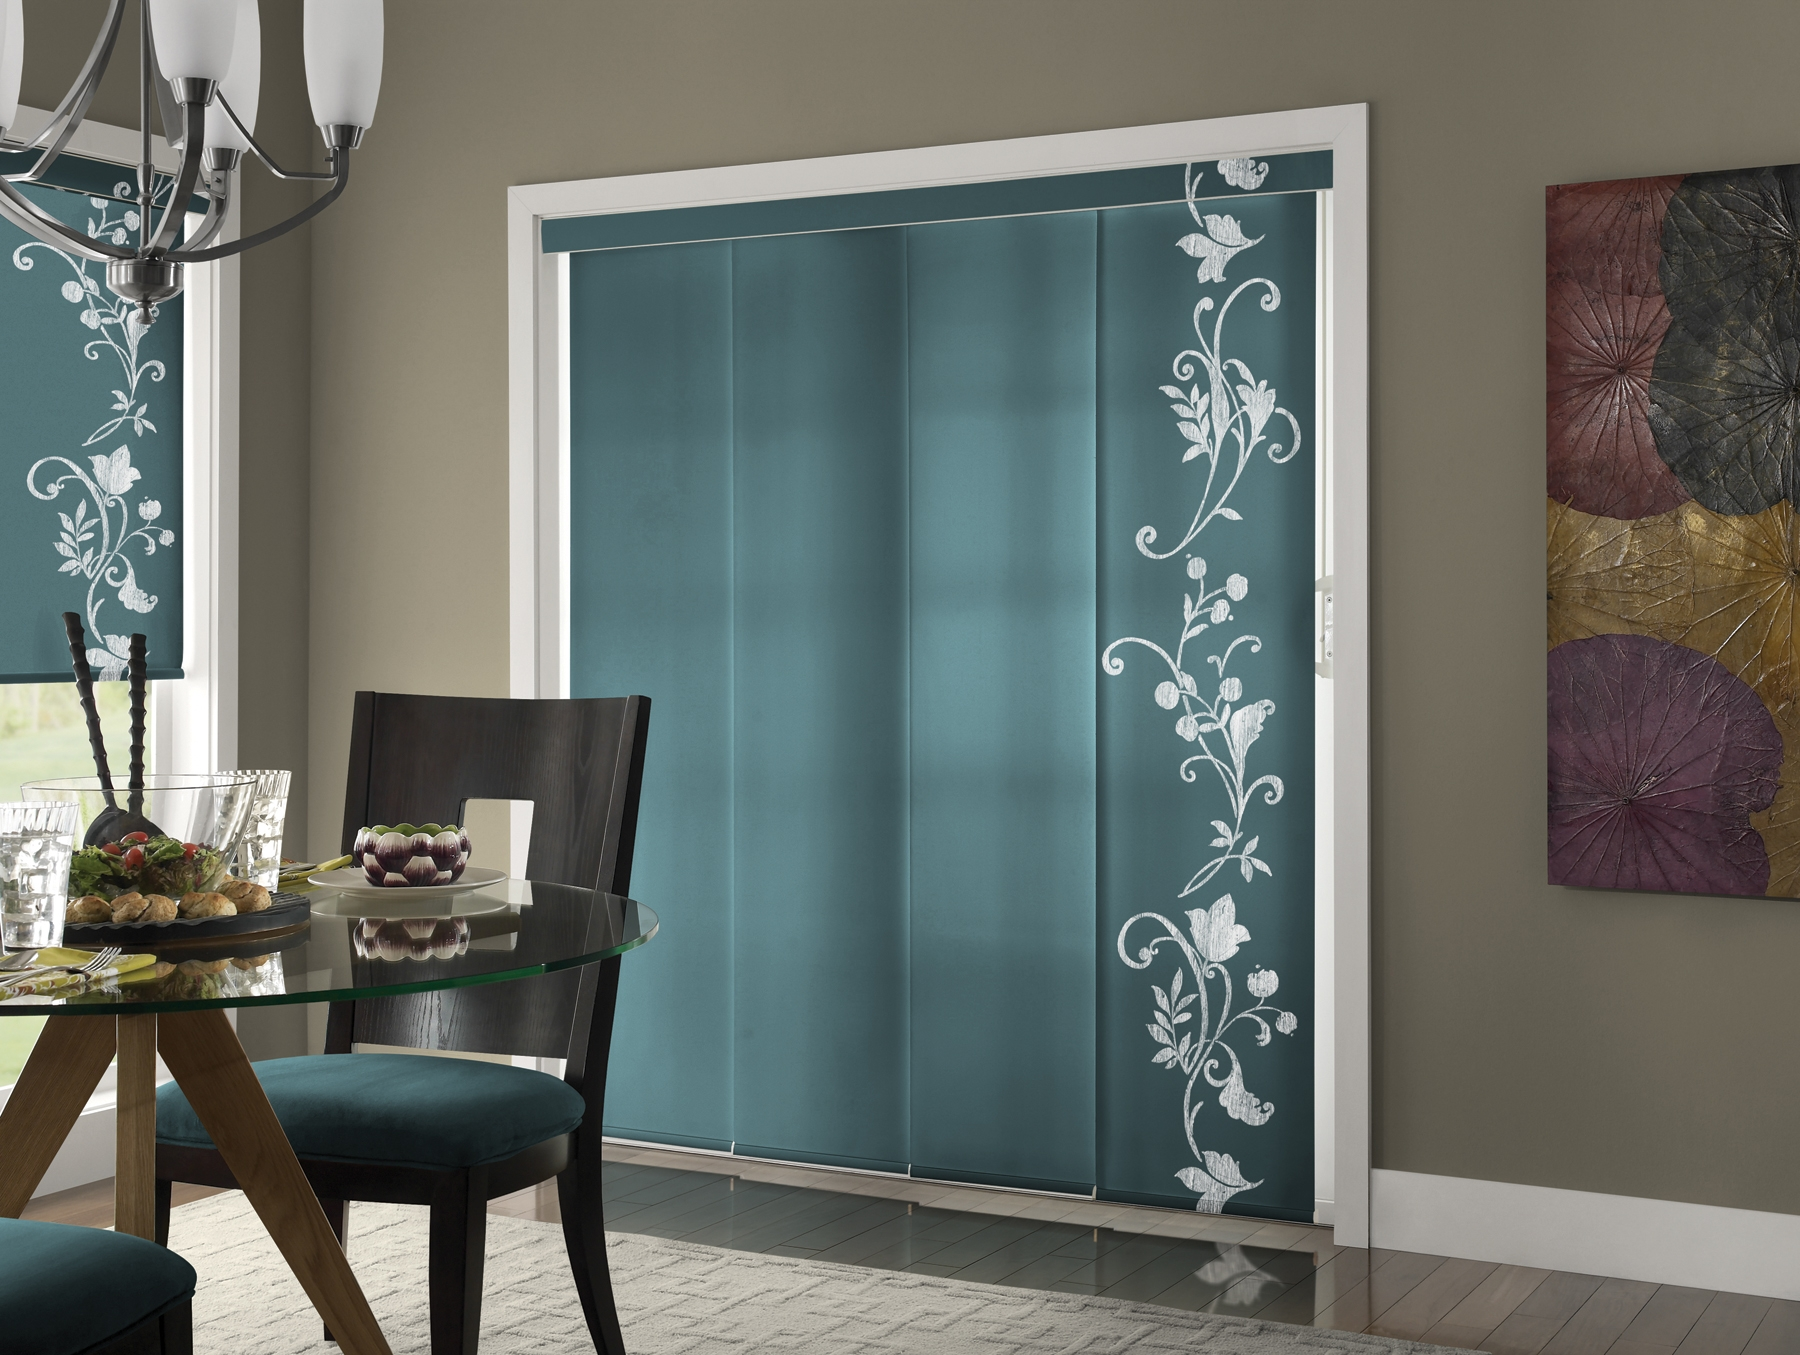 Panel Track Curtains For Sliding Glass Doors1800 X 1355